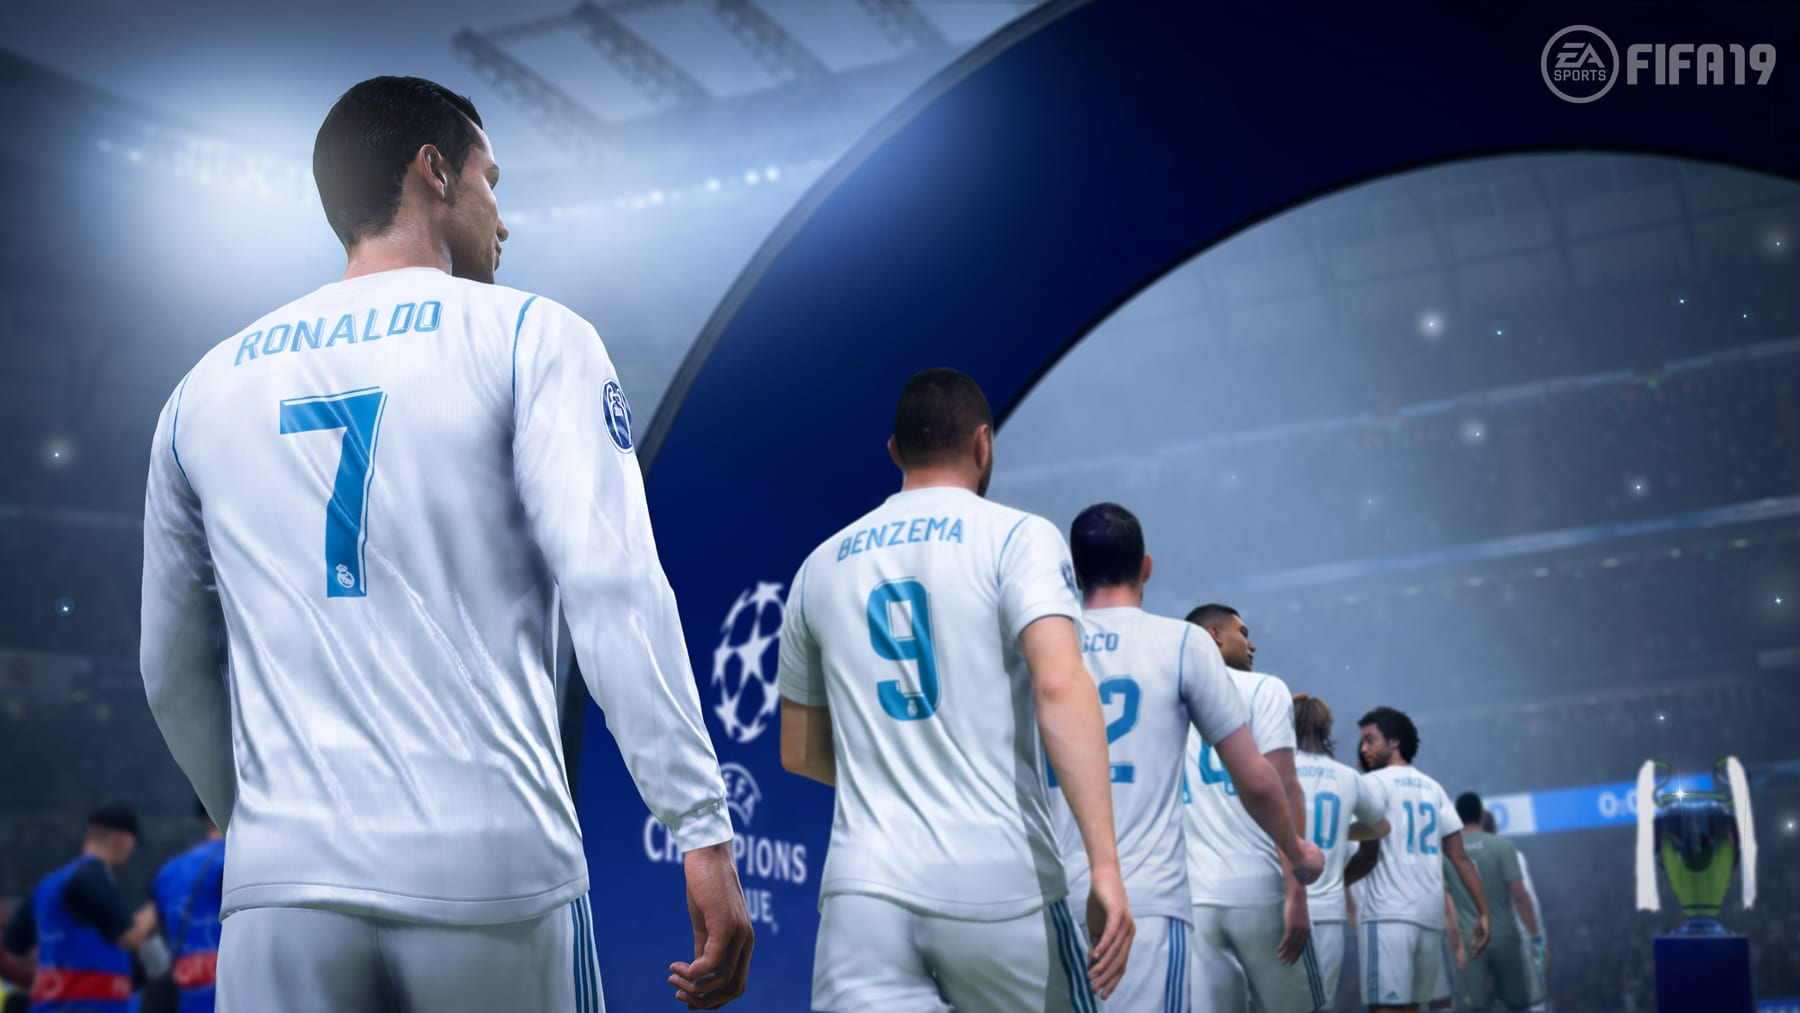 how ronaldo s transfer impacted the journey in fifa 19